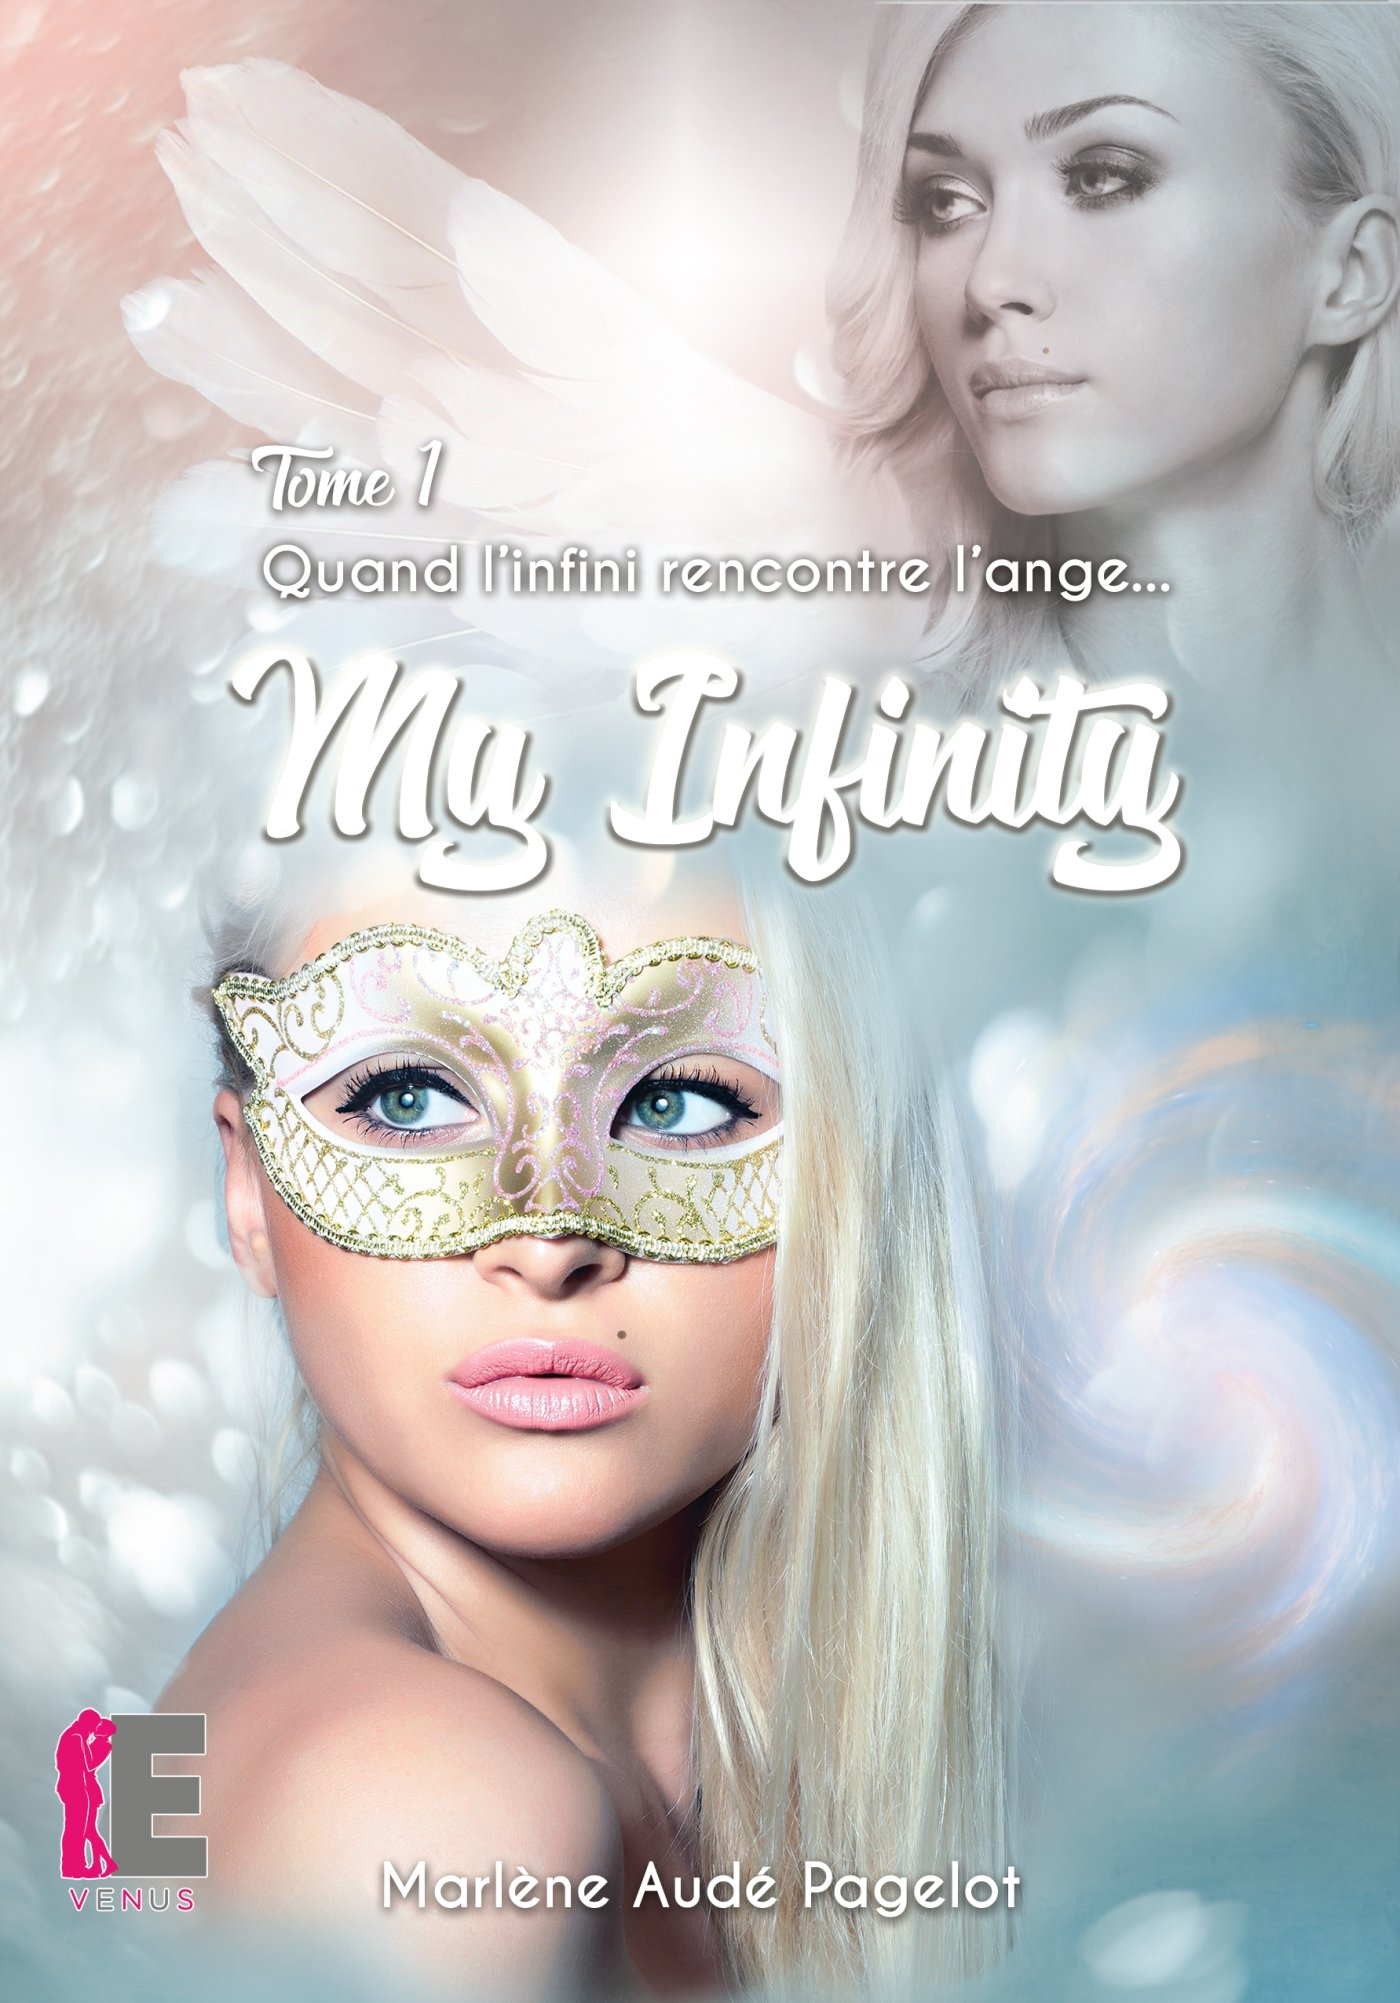 Amazon in: Buy My infinity tome 1 - quand l'infini rencontre l'ange